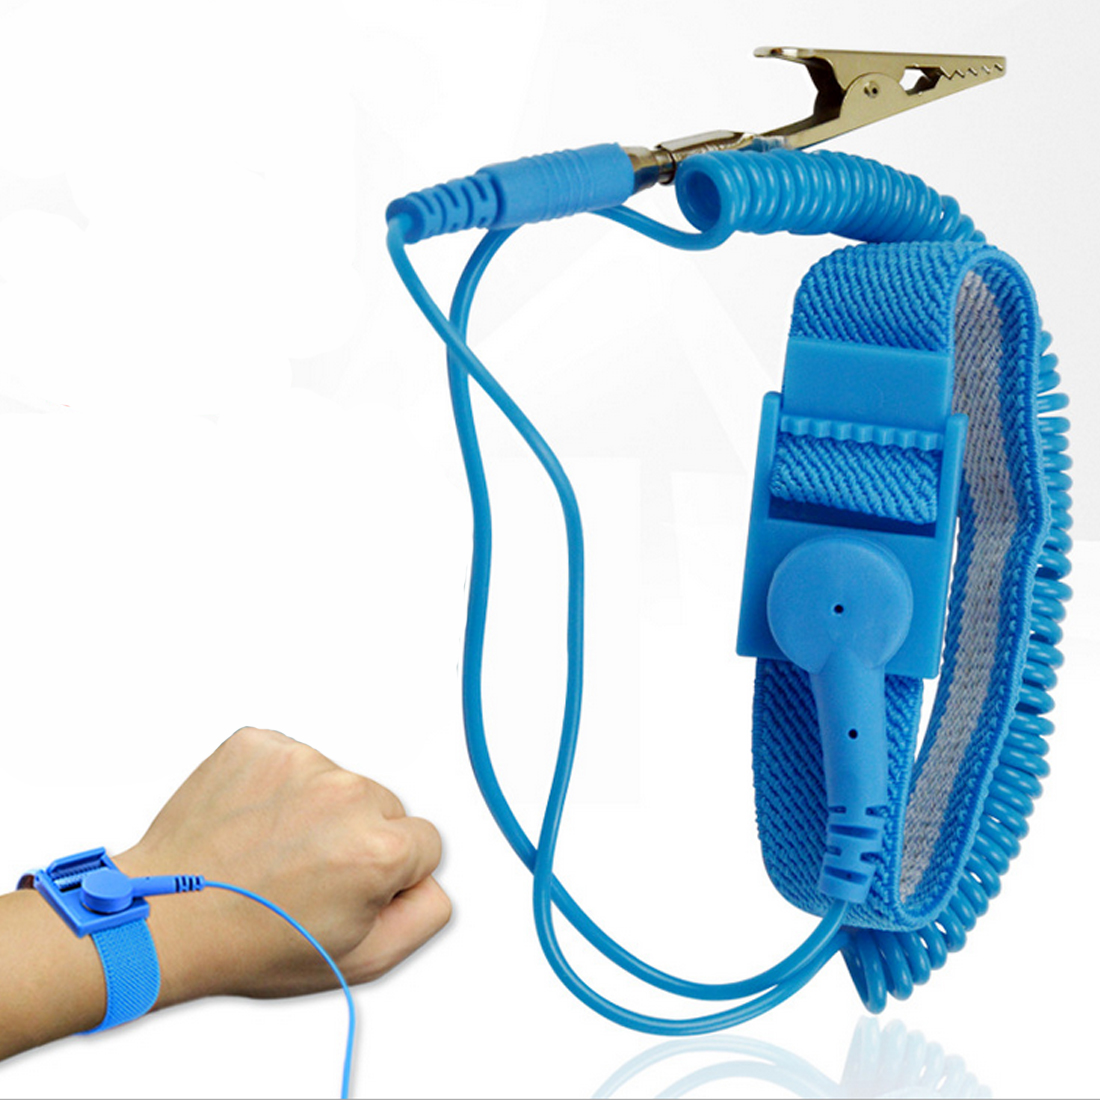 High Quality Anti Static Wrist Strap Elastic Band With Clip For Sensitive Electronics Repair Work Tools